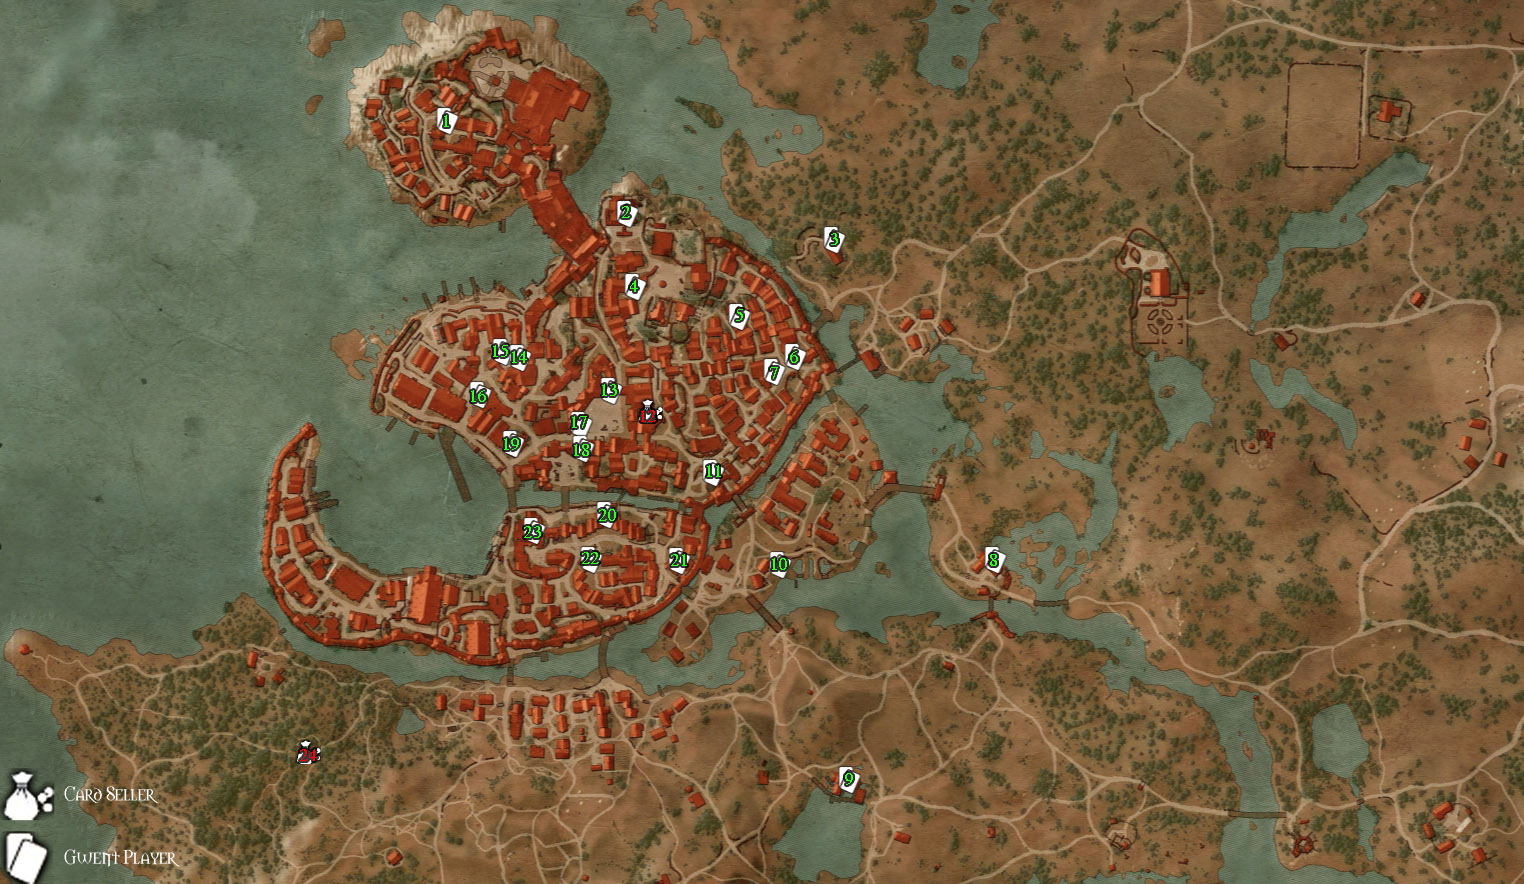 Gwent card locations the witcher 3 - Gwent Card Locations The Witcher 3 1